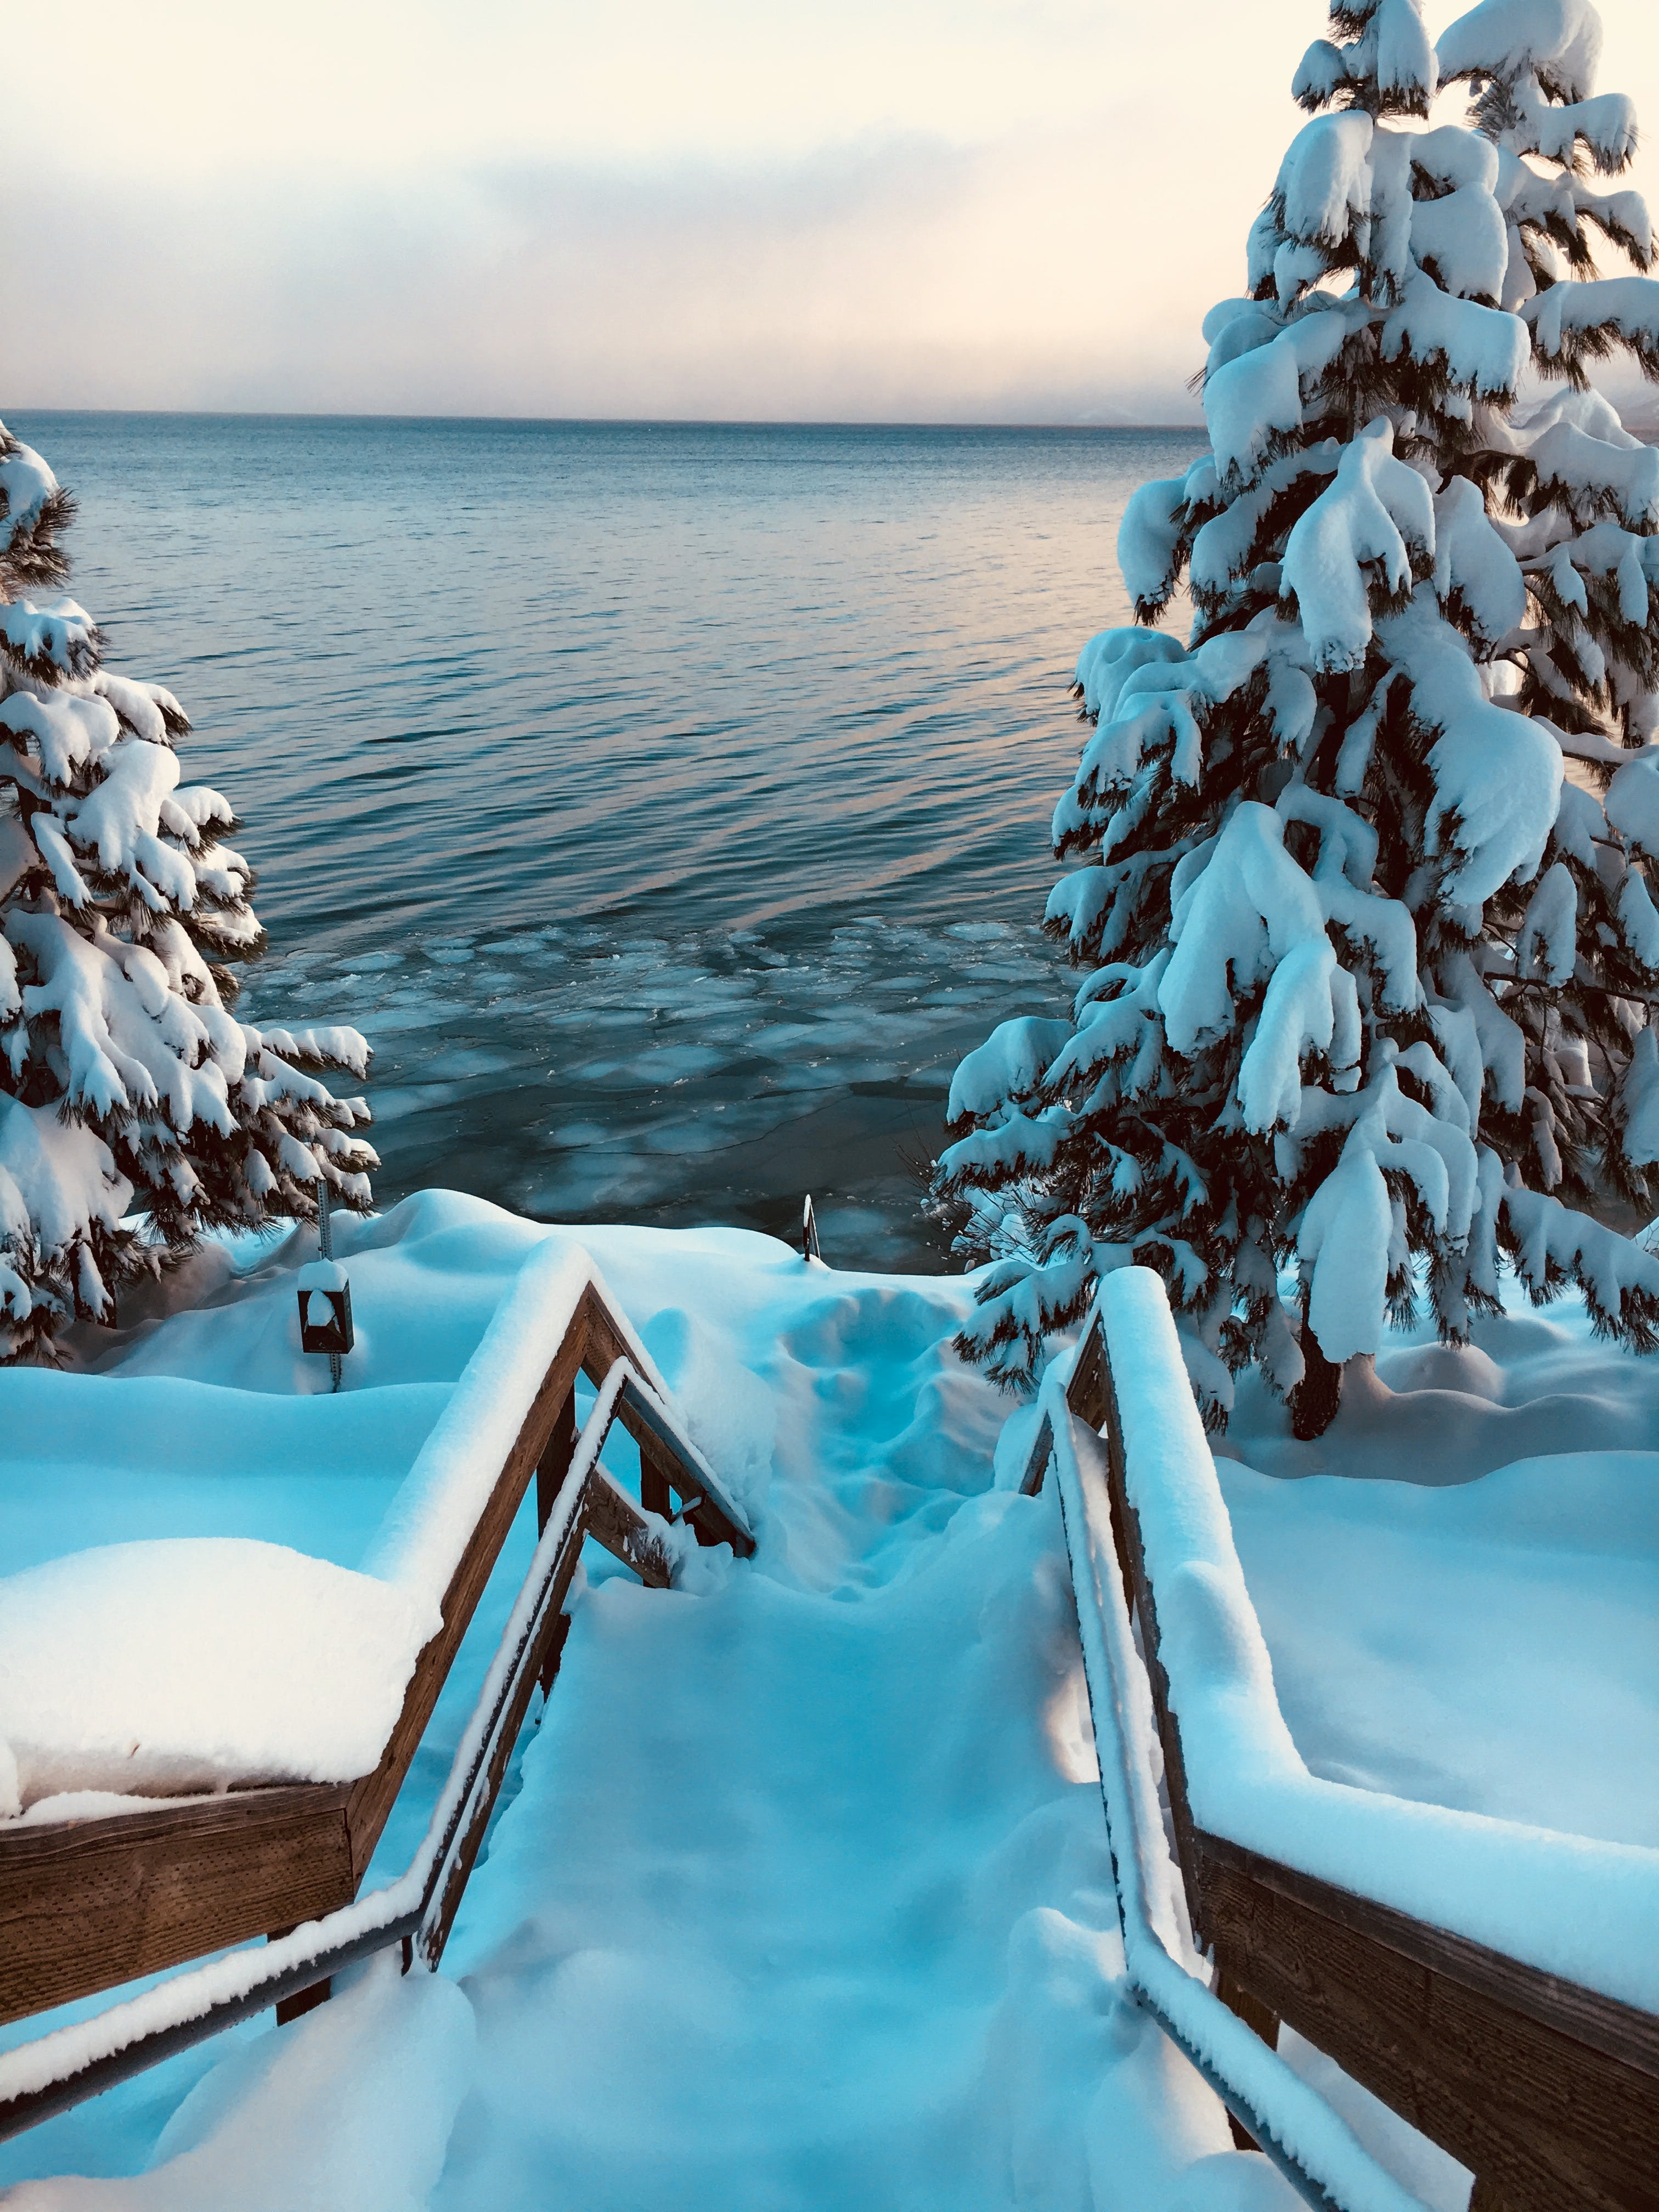 Snow Covered Stairs Near Body of Water